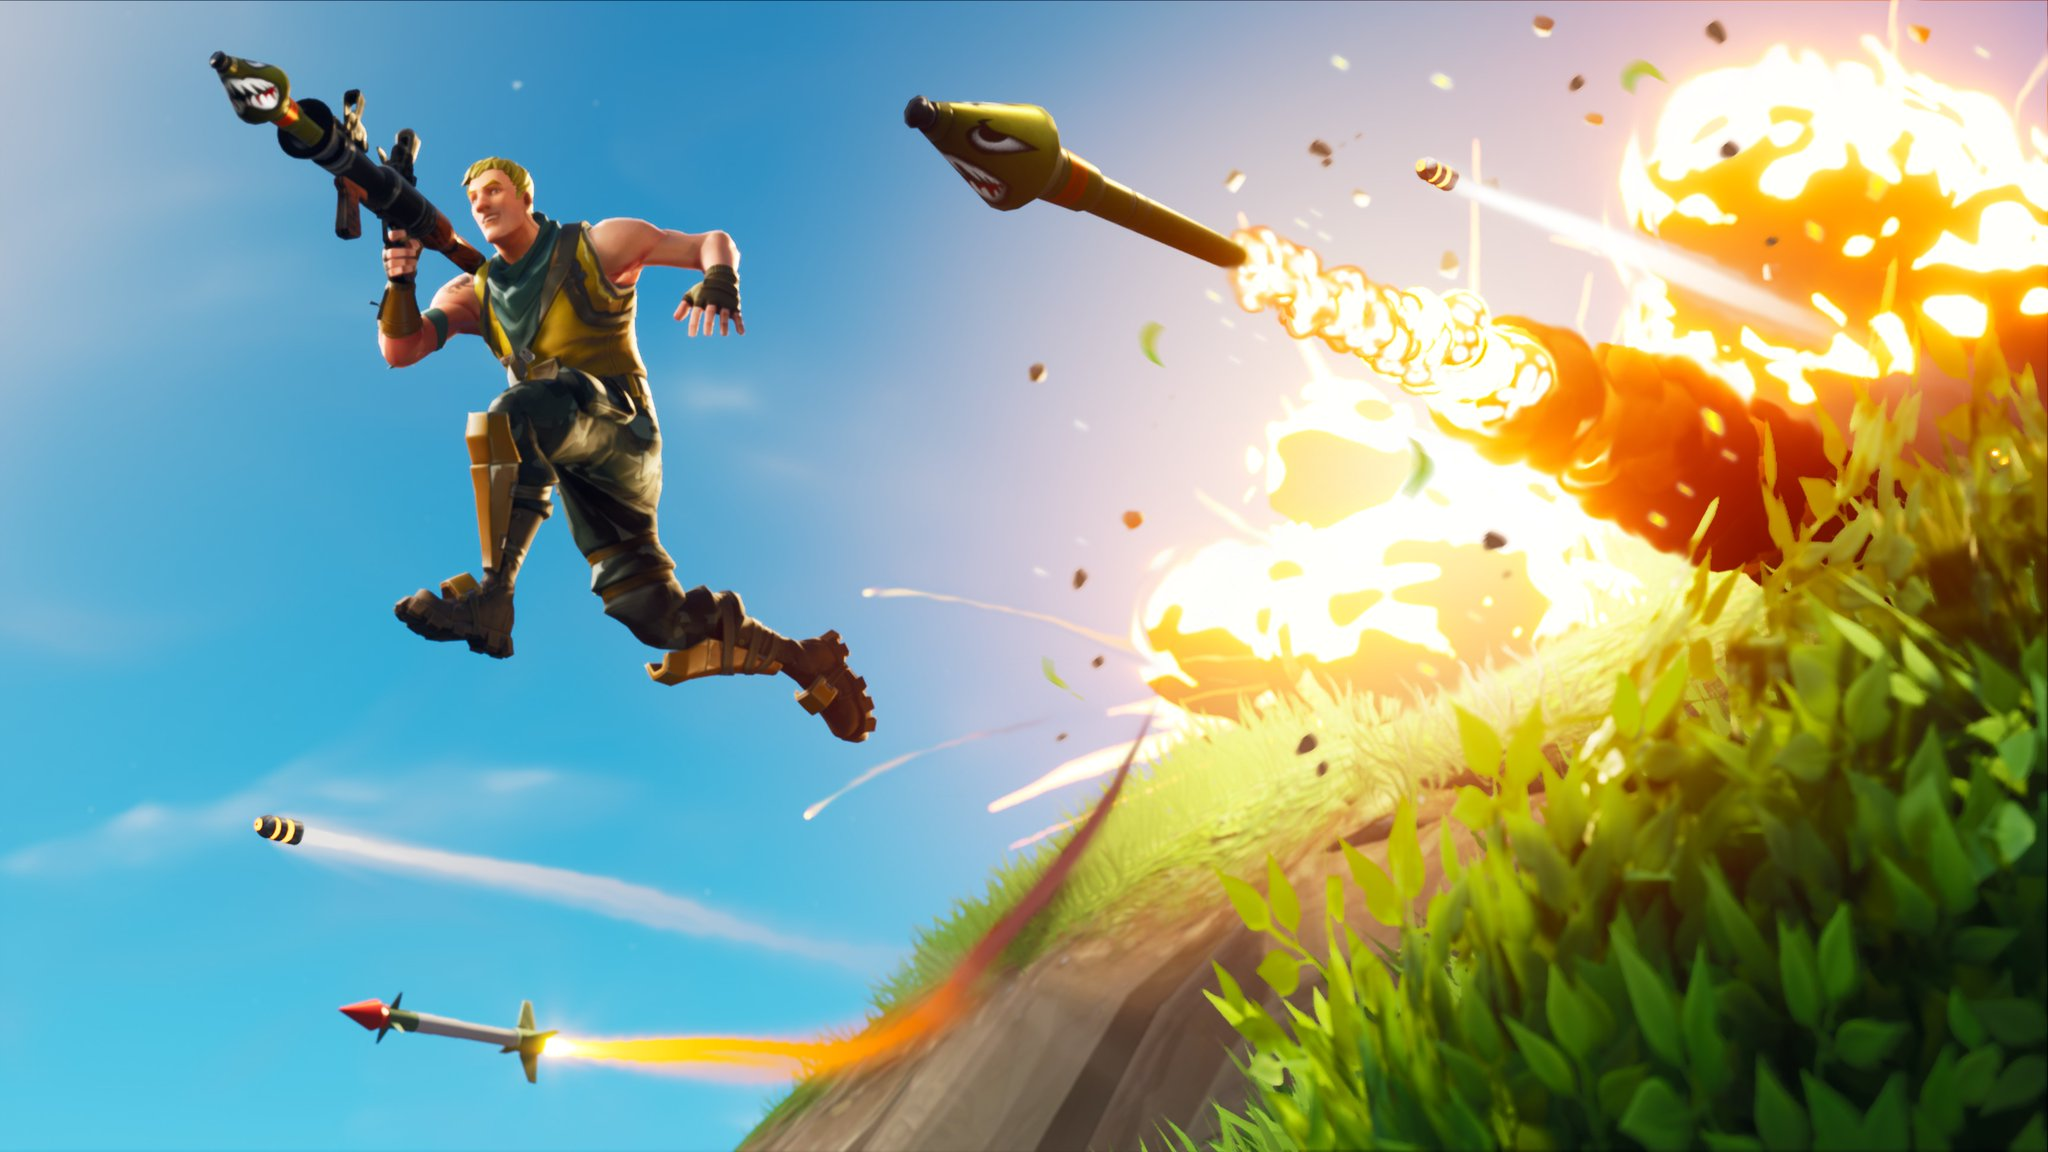 Fortnite - Highly Explosive Promotional Image